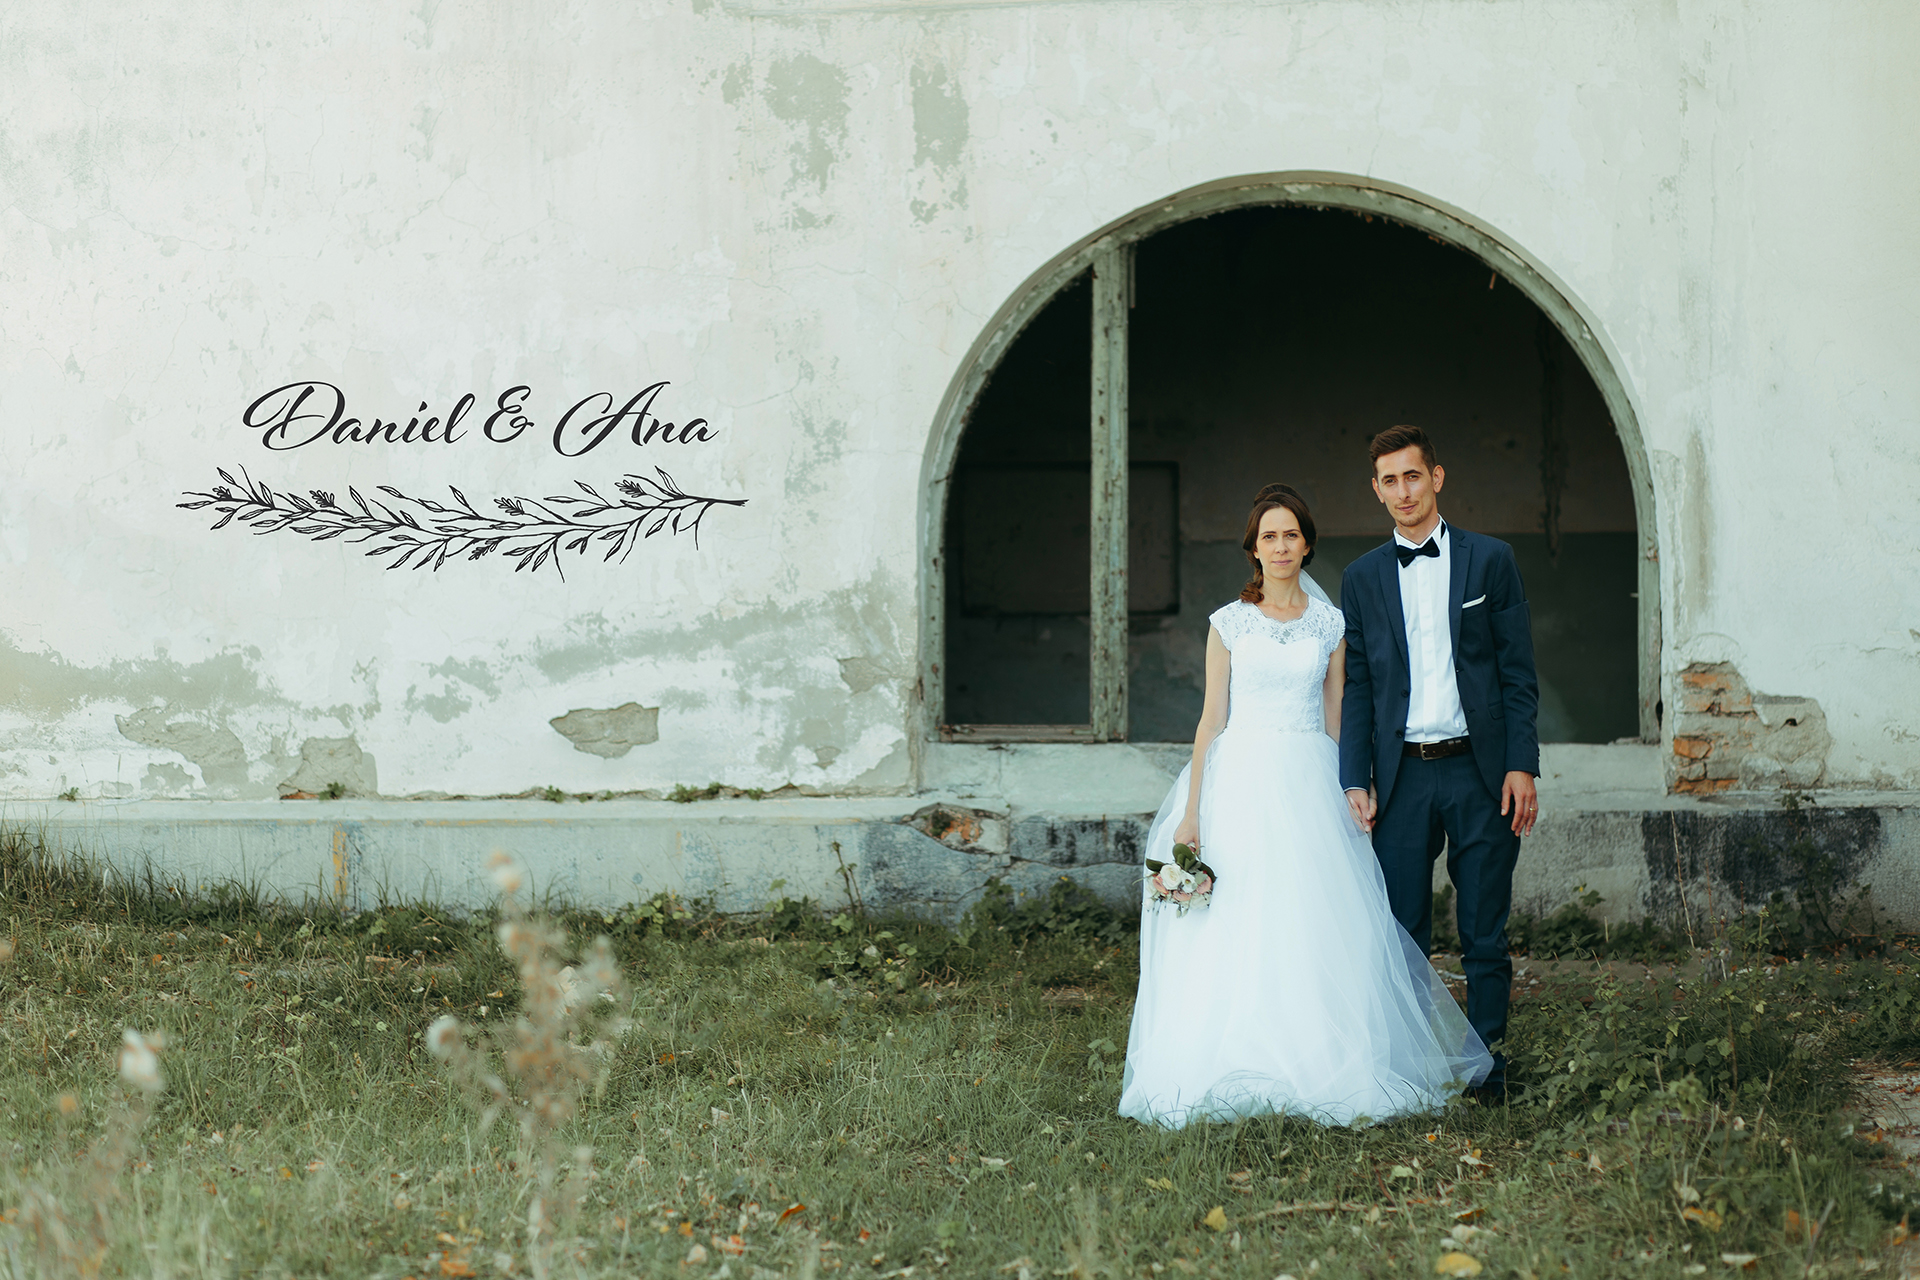 Daniel & Ana - Wedding 1